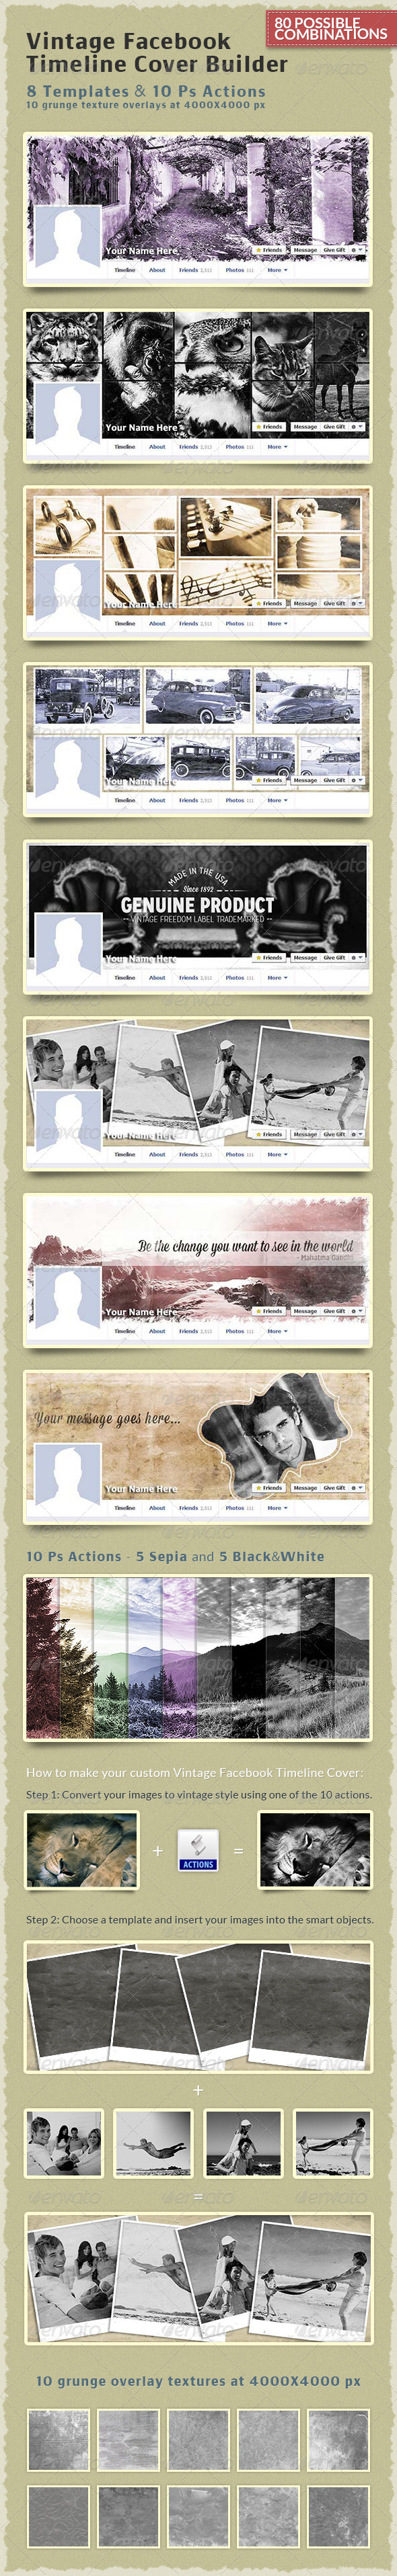 GraphicRiver Vintage Facebook Timeline Cover Builder 6482845